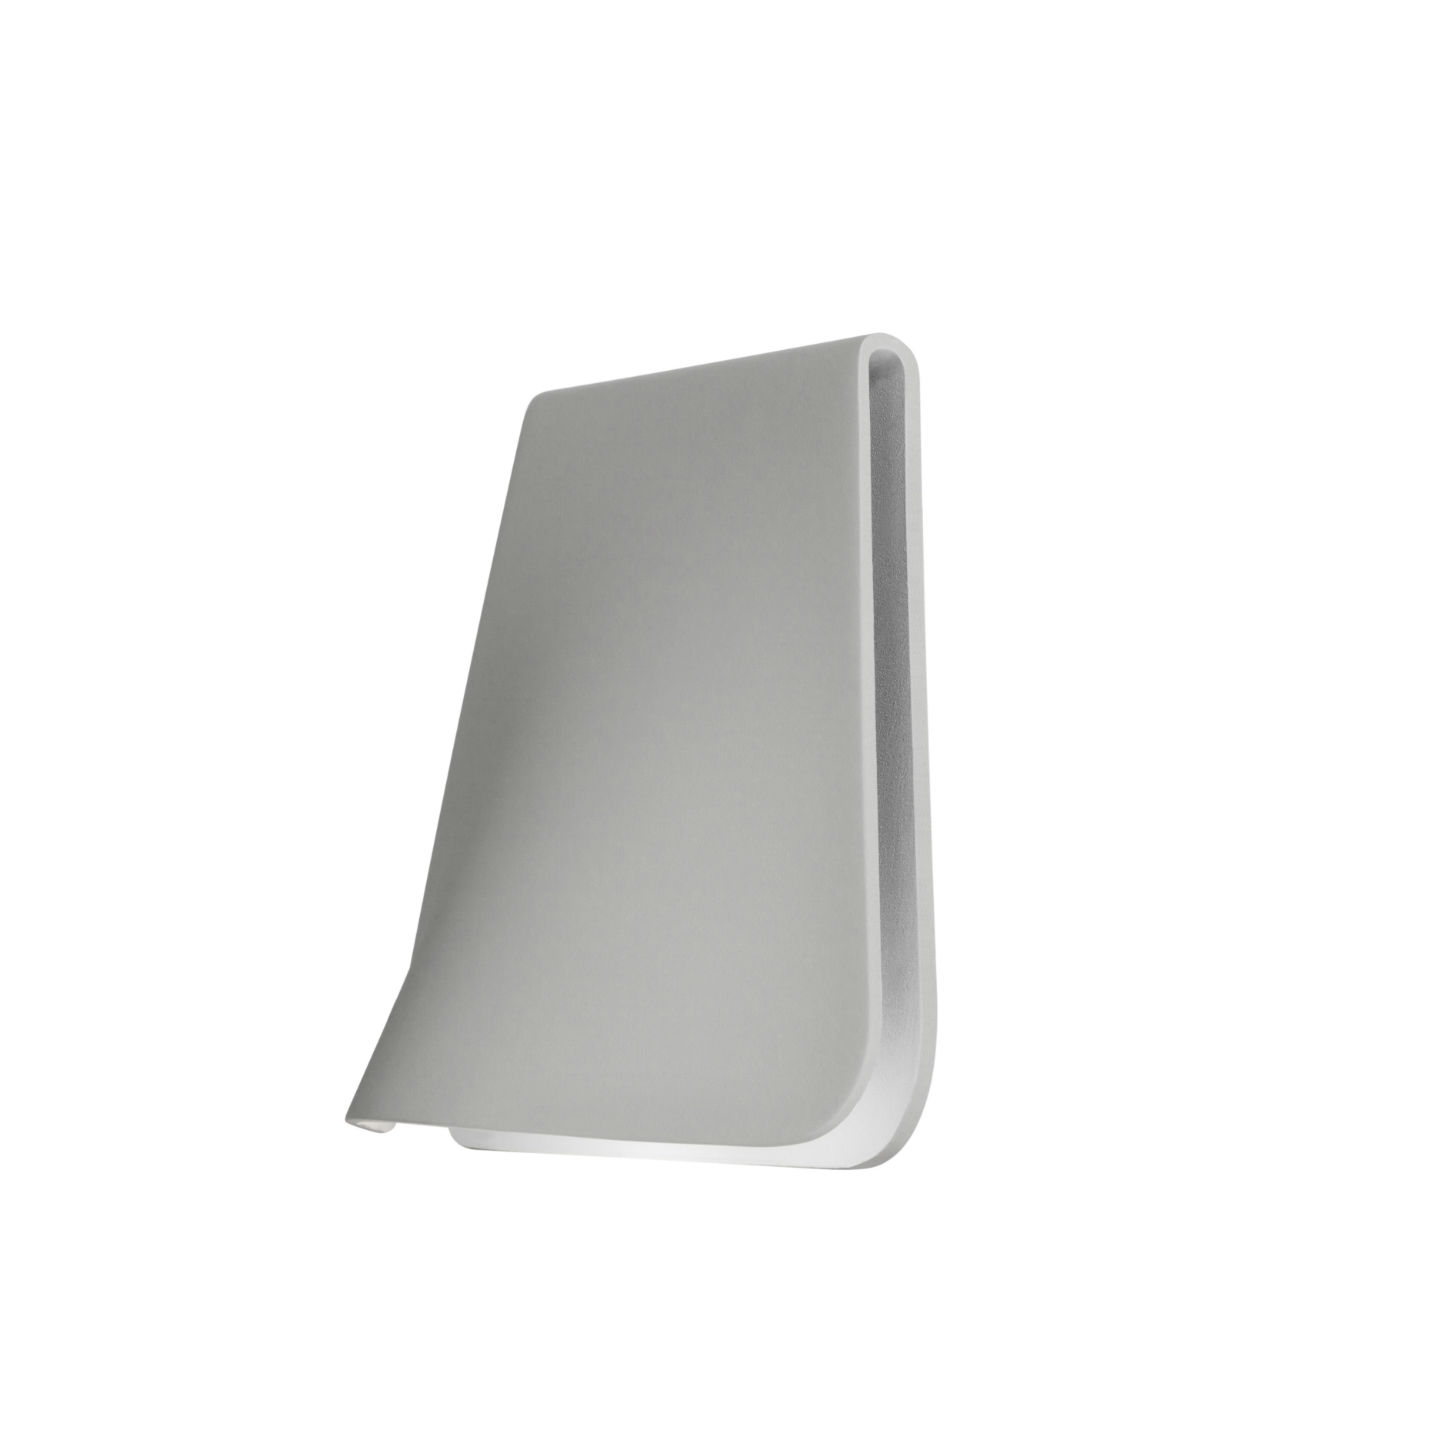 Plec to 3060 Wall Lamp R7s 1x120w 230v white matt